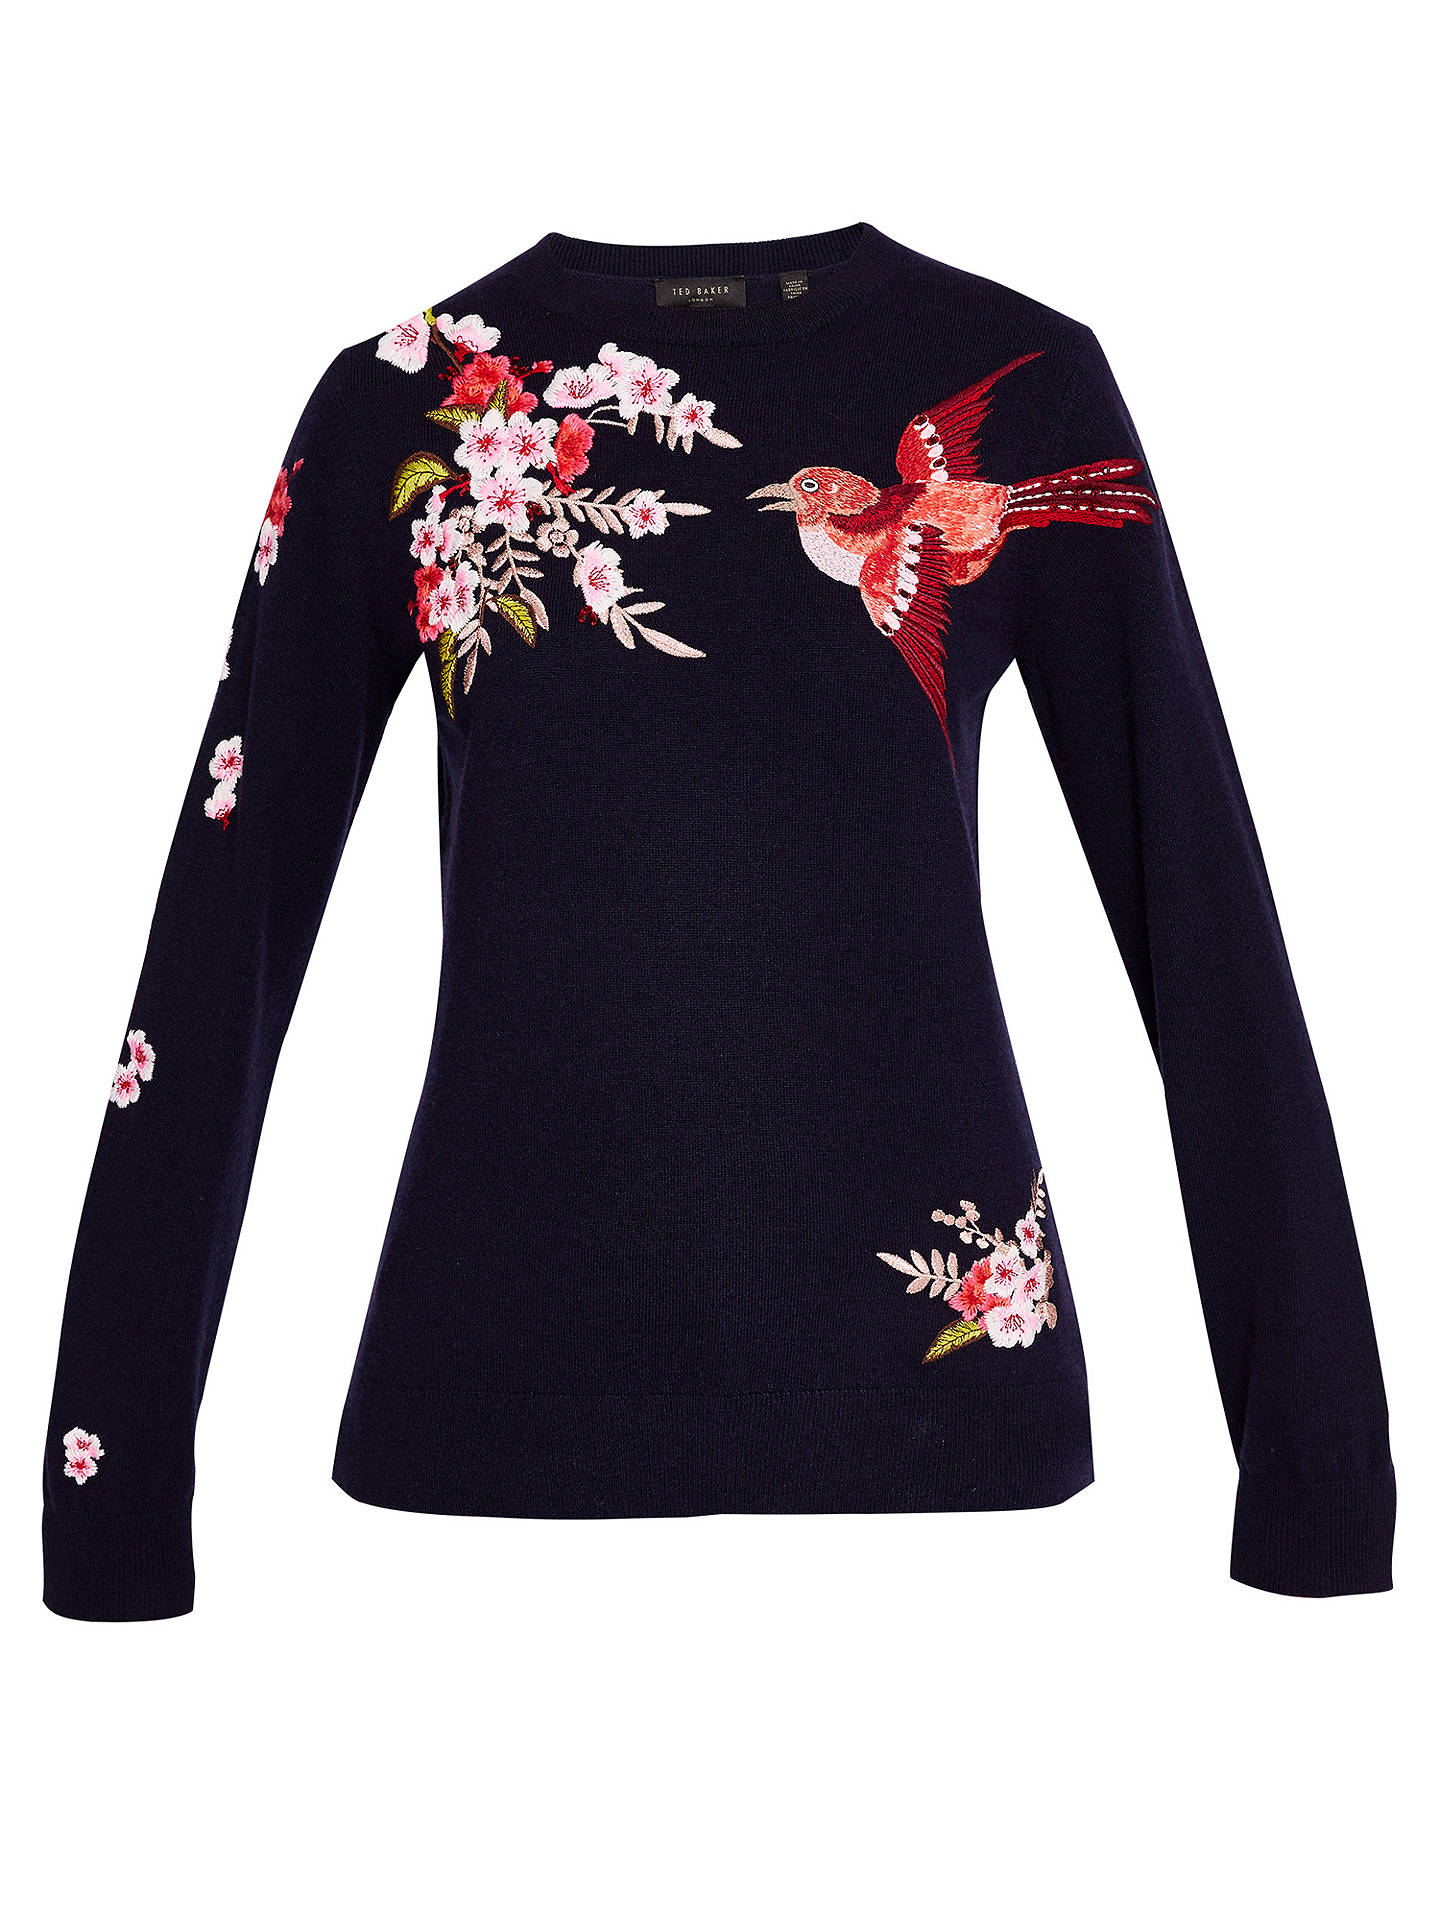 65c306cb0 ... Buy Ted Baker Auroraa Bird Blossom Embroidered Jumper